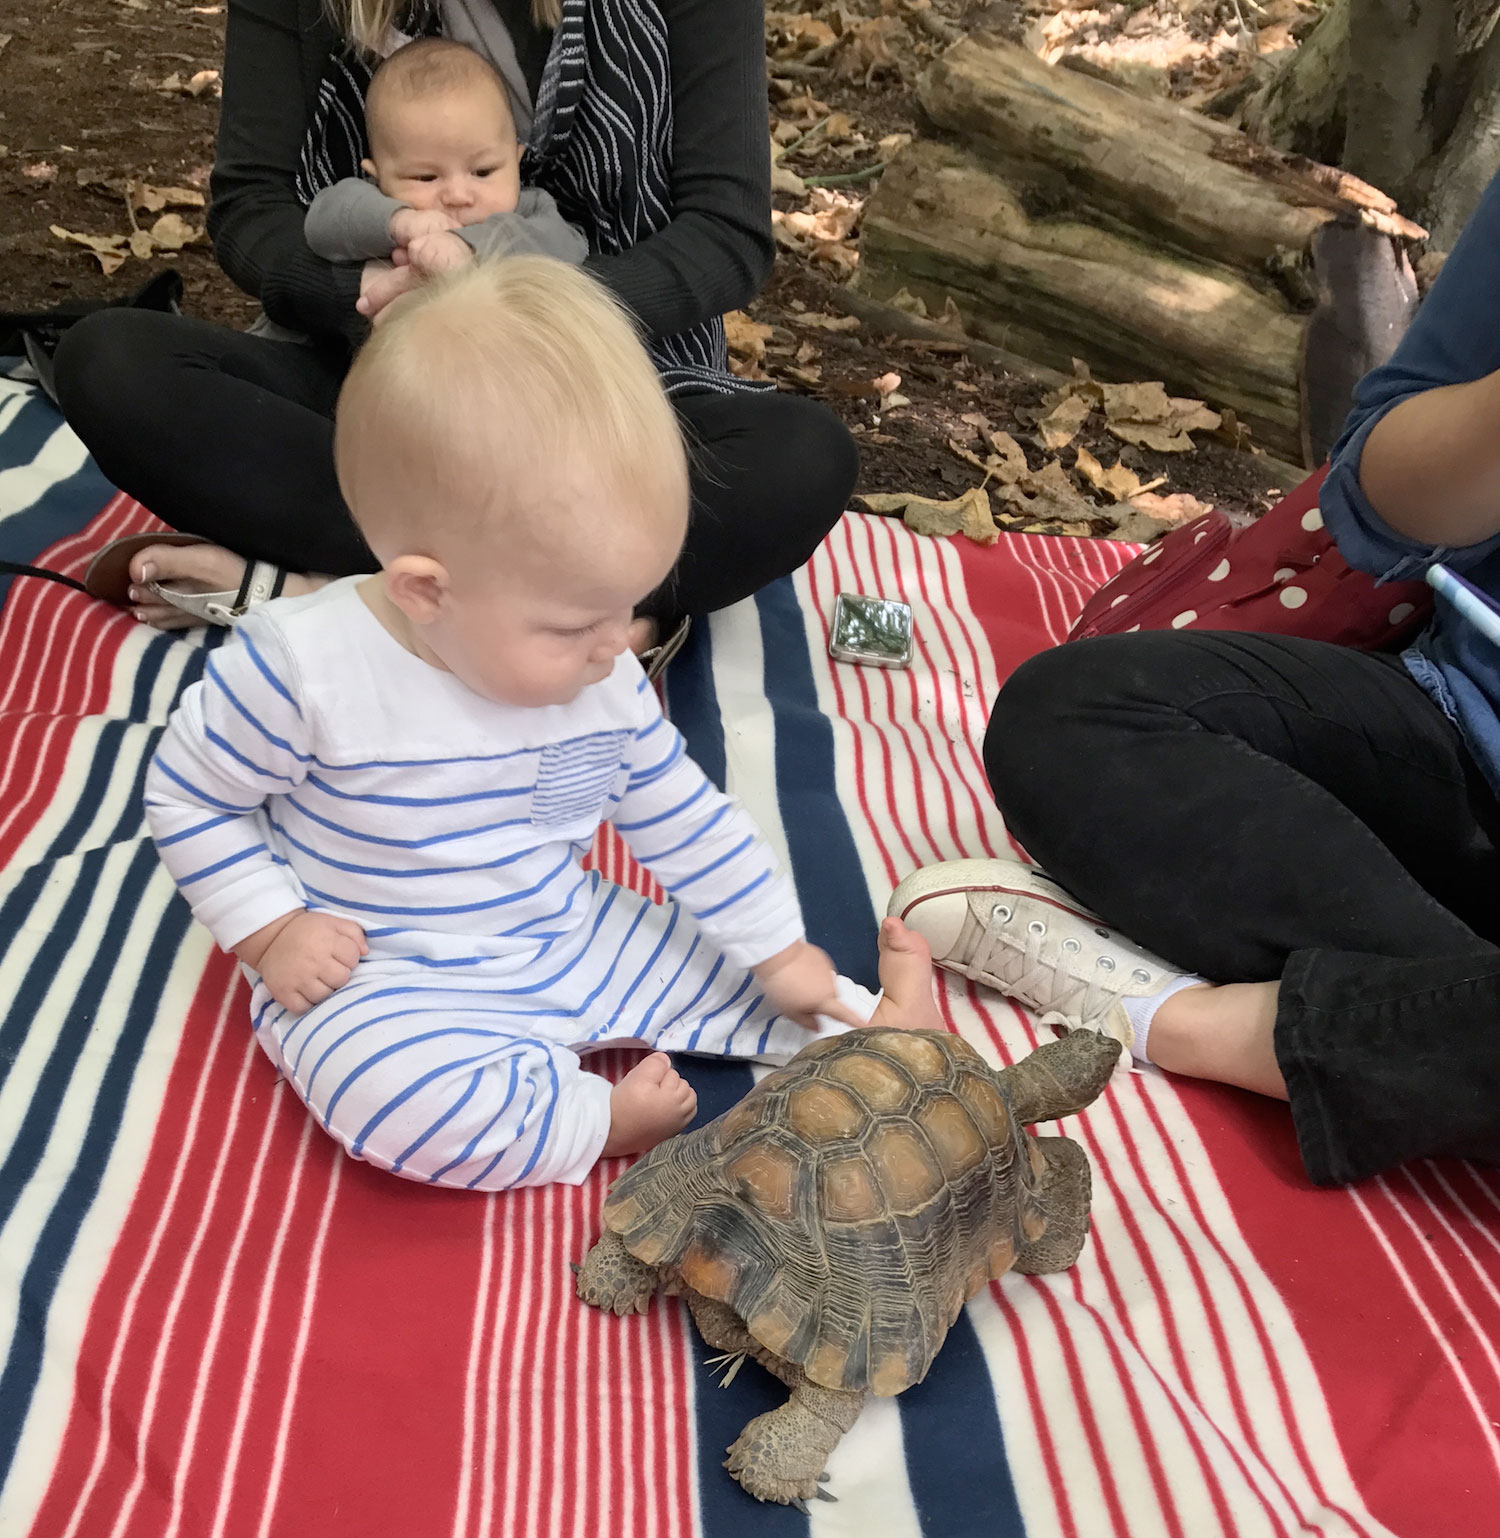 Tiny Naturalists baby with turtle